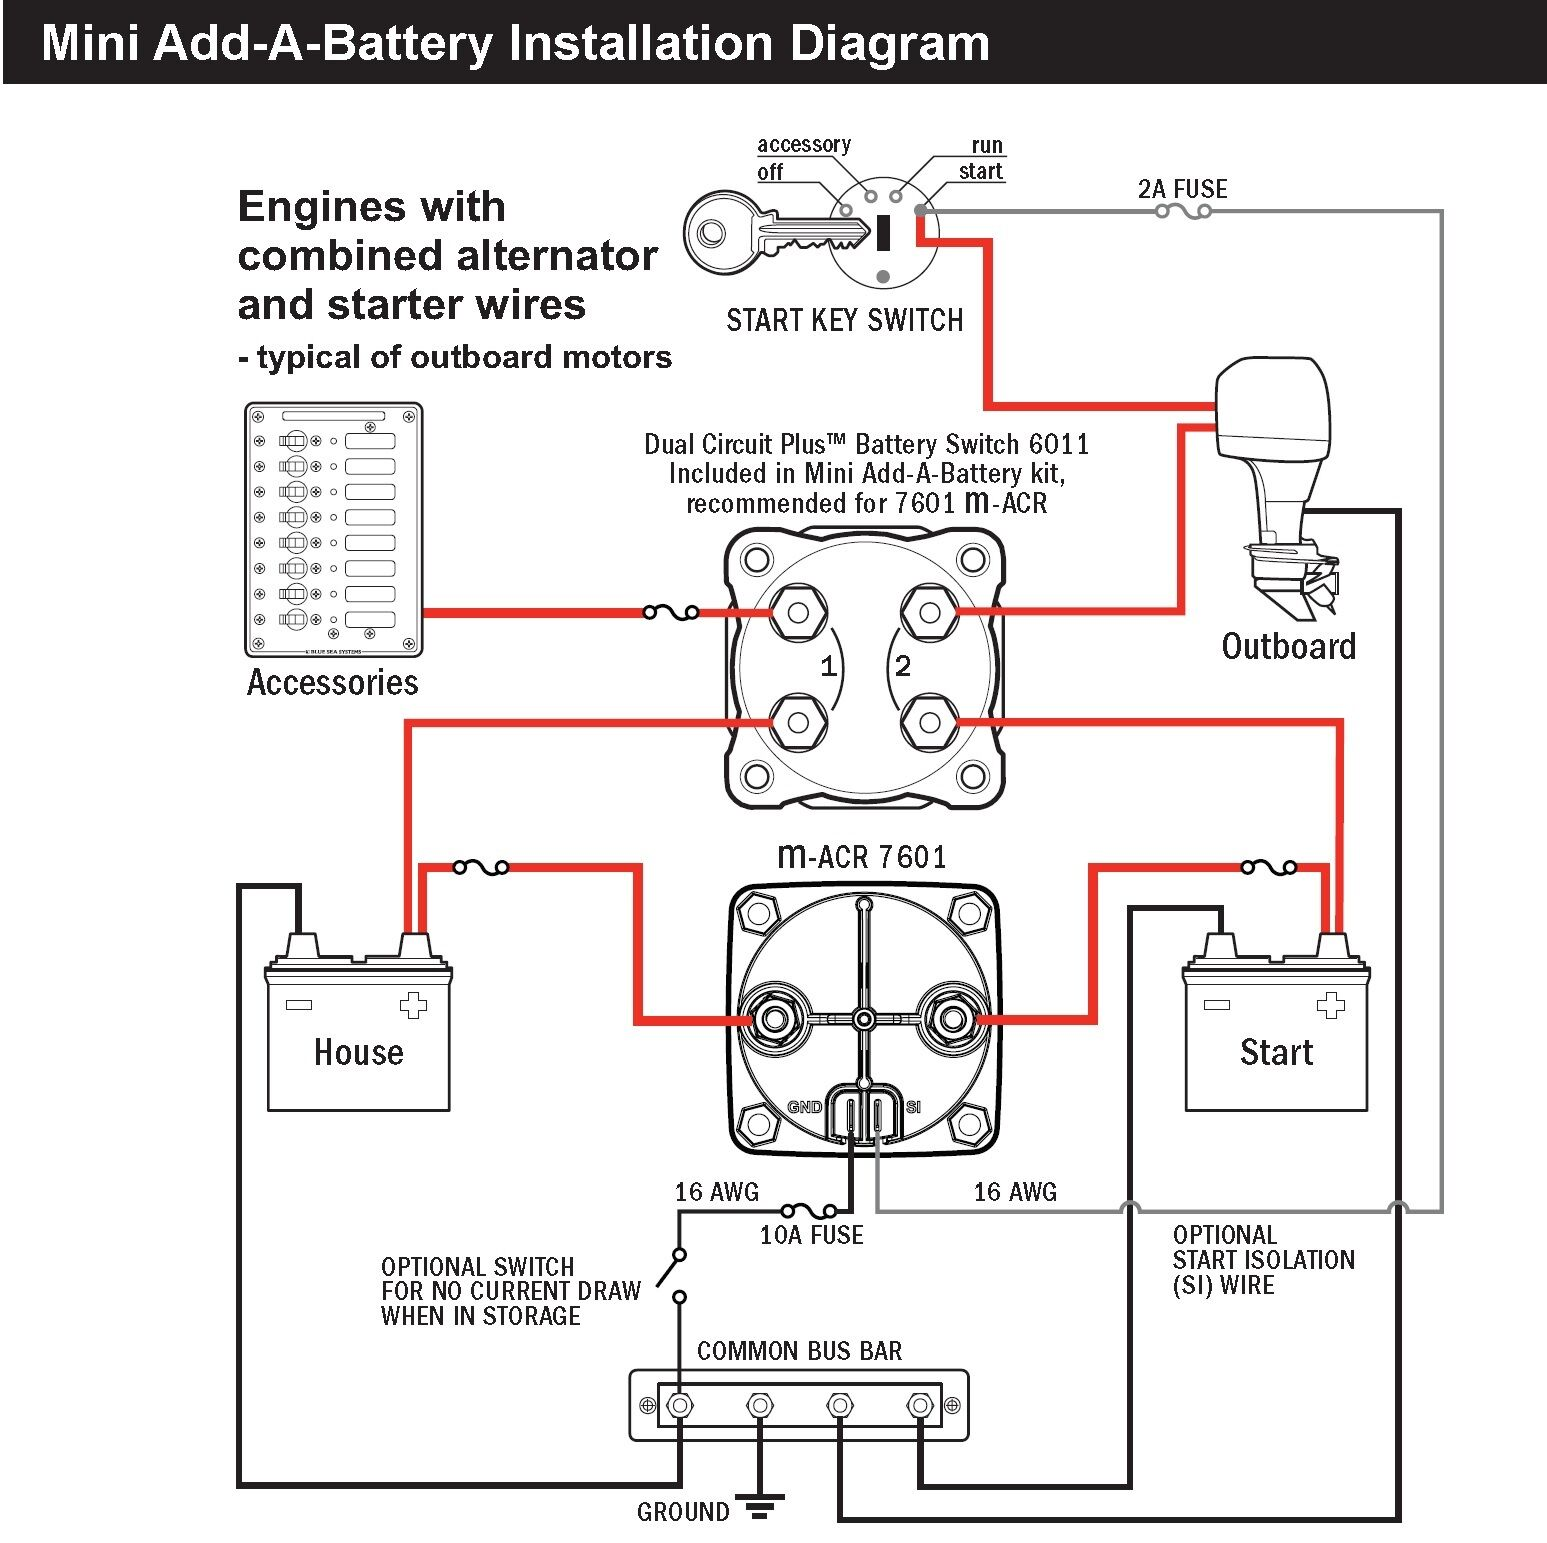 hight resolution of marine dual battery switch wiring diagram oil leaking from clutch pedal from hyundai elantra 2004 oil leaking from clutch pedal from hyundai elantra 2004